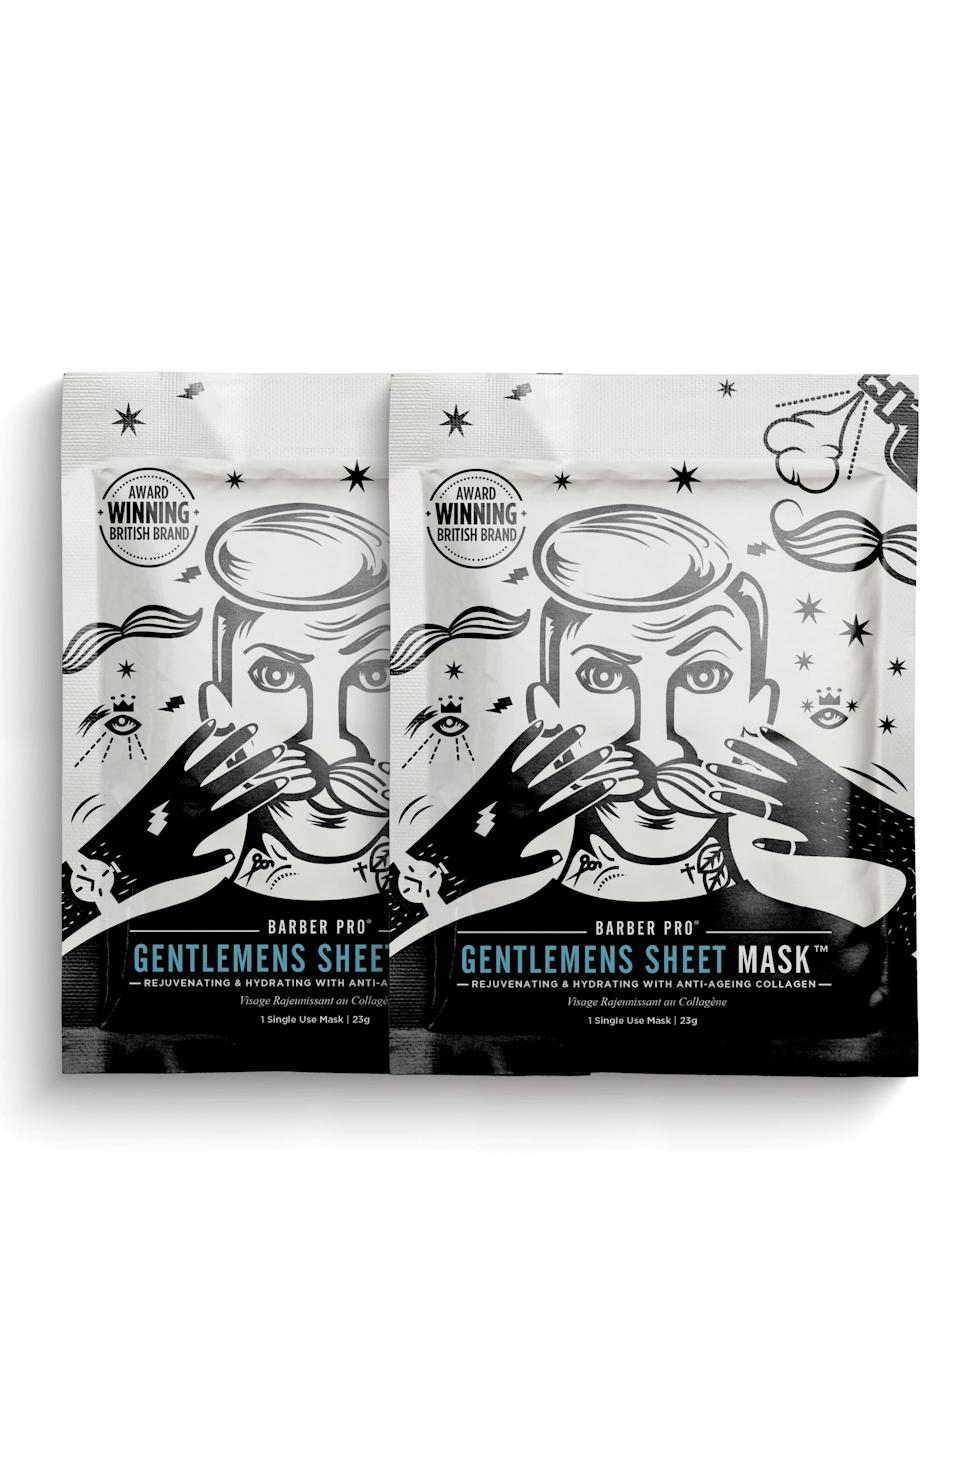 """<h3><strong>Barber Pro</strong> Gentlemen's Sheet Mask Duo</h3><br><br>Self-care could easily be putting a sheet mask on while taking a nap on the couch — and this facial hair-friendly mask is perfect for exactly that.<br><br><strong>Barber Pro</strong> Gentlemen's Sheet Mask Duo, $, available at <a href=""""https://go.skimresources.com/?id=30283X879131&url=https%3A%2F%2Fshop.nordstrom.com%2Fs%2Fbarber-pro-gentlemens-sheet-mask-duo-nordstrom-exclusive%2F4800278%3Forigin%3Dcategory-personalizedsort%26breadcrumb%3DHome%252FMen%252FGrooming%2520%2526%2520Cologne%252FGifts%2520%2526%2520Sets%26color%3Dnone"""" rel=""""nofollow noopener"""" target=""""_blank"""" data-ylk=""""slk:Nordstrom"""" class=""""link rapid-noclick-resp"""">Nordstrom</a>"""